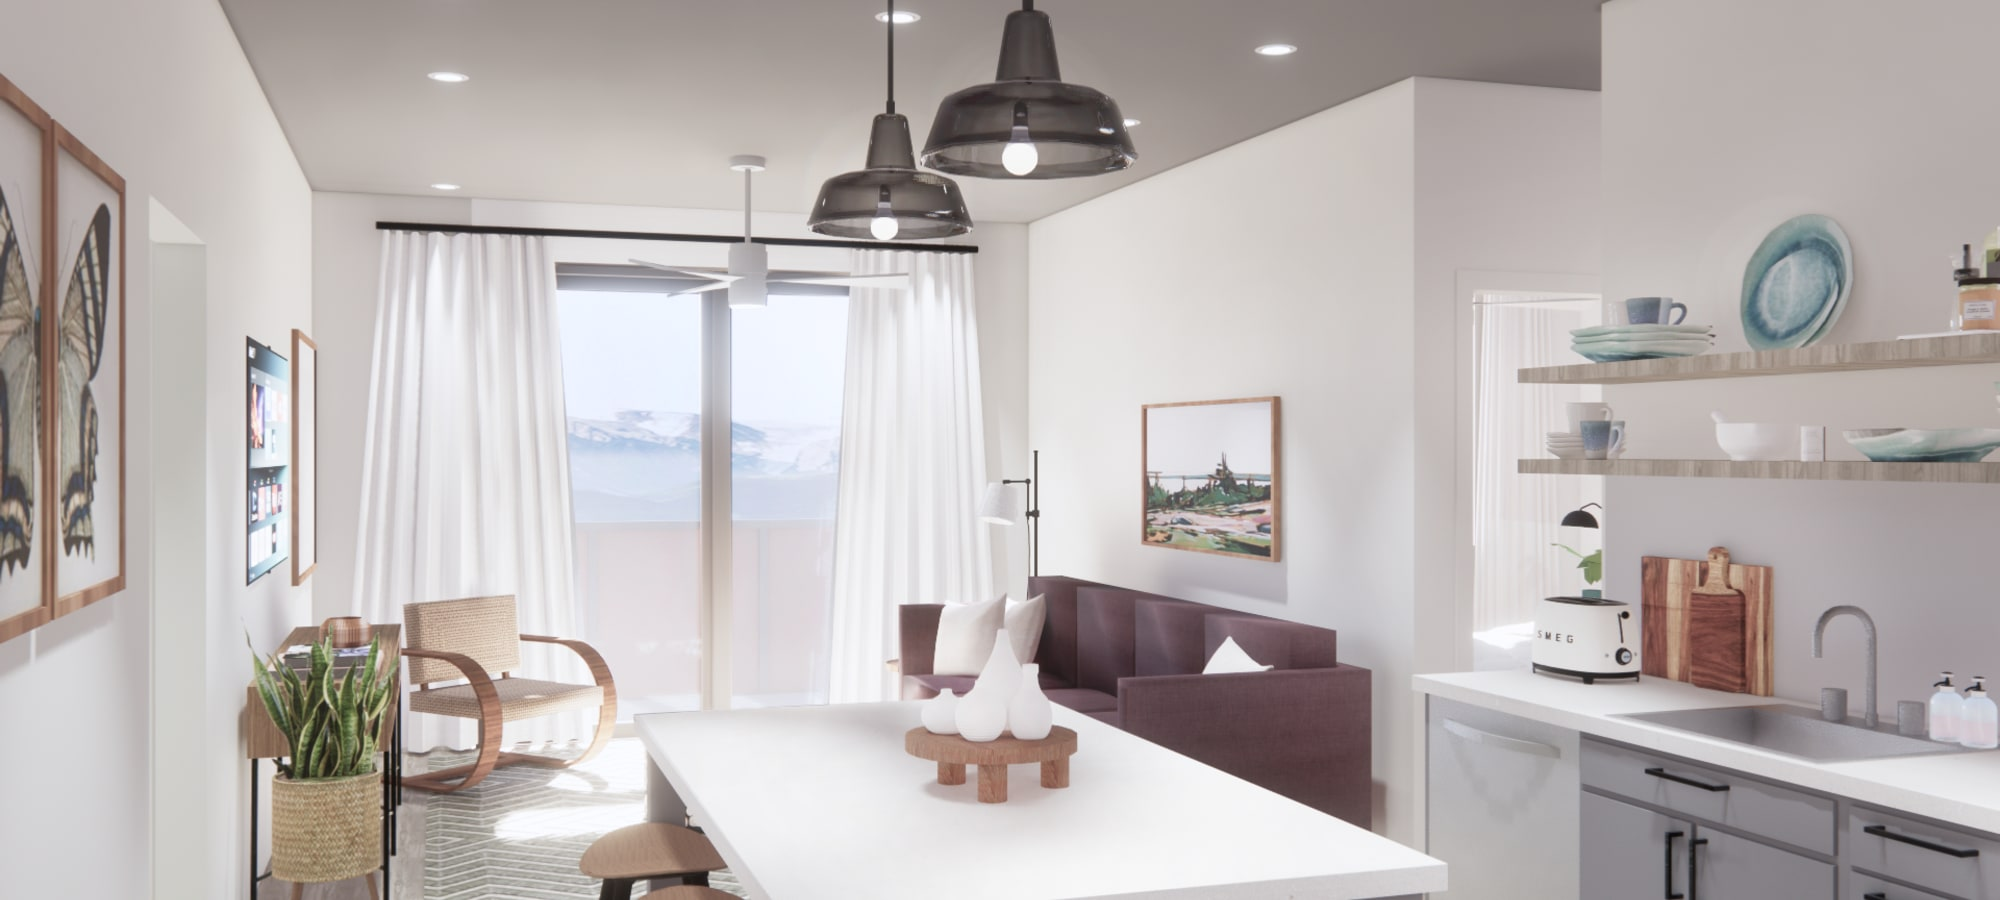 Rendering of kitchen at The Piedmont in Tempe, Arizona